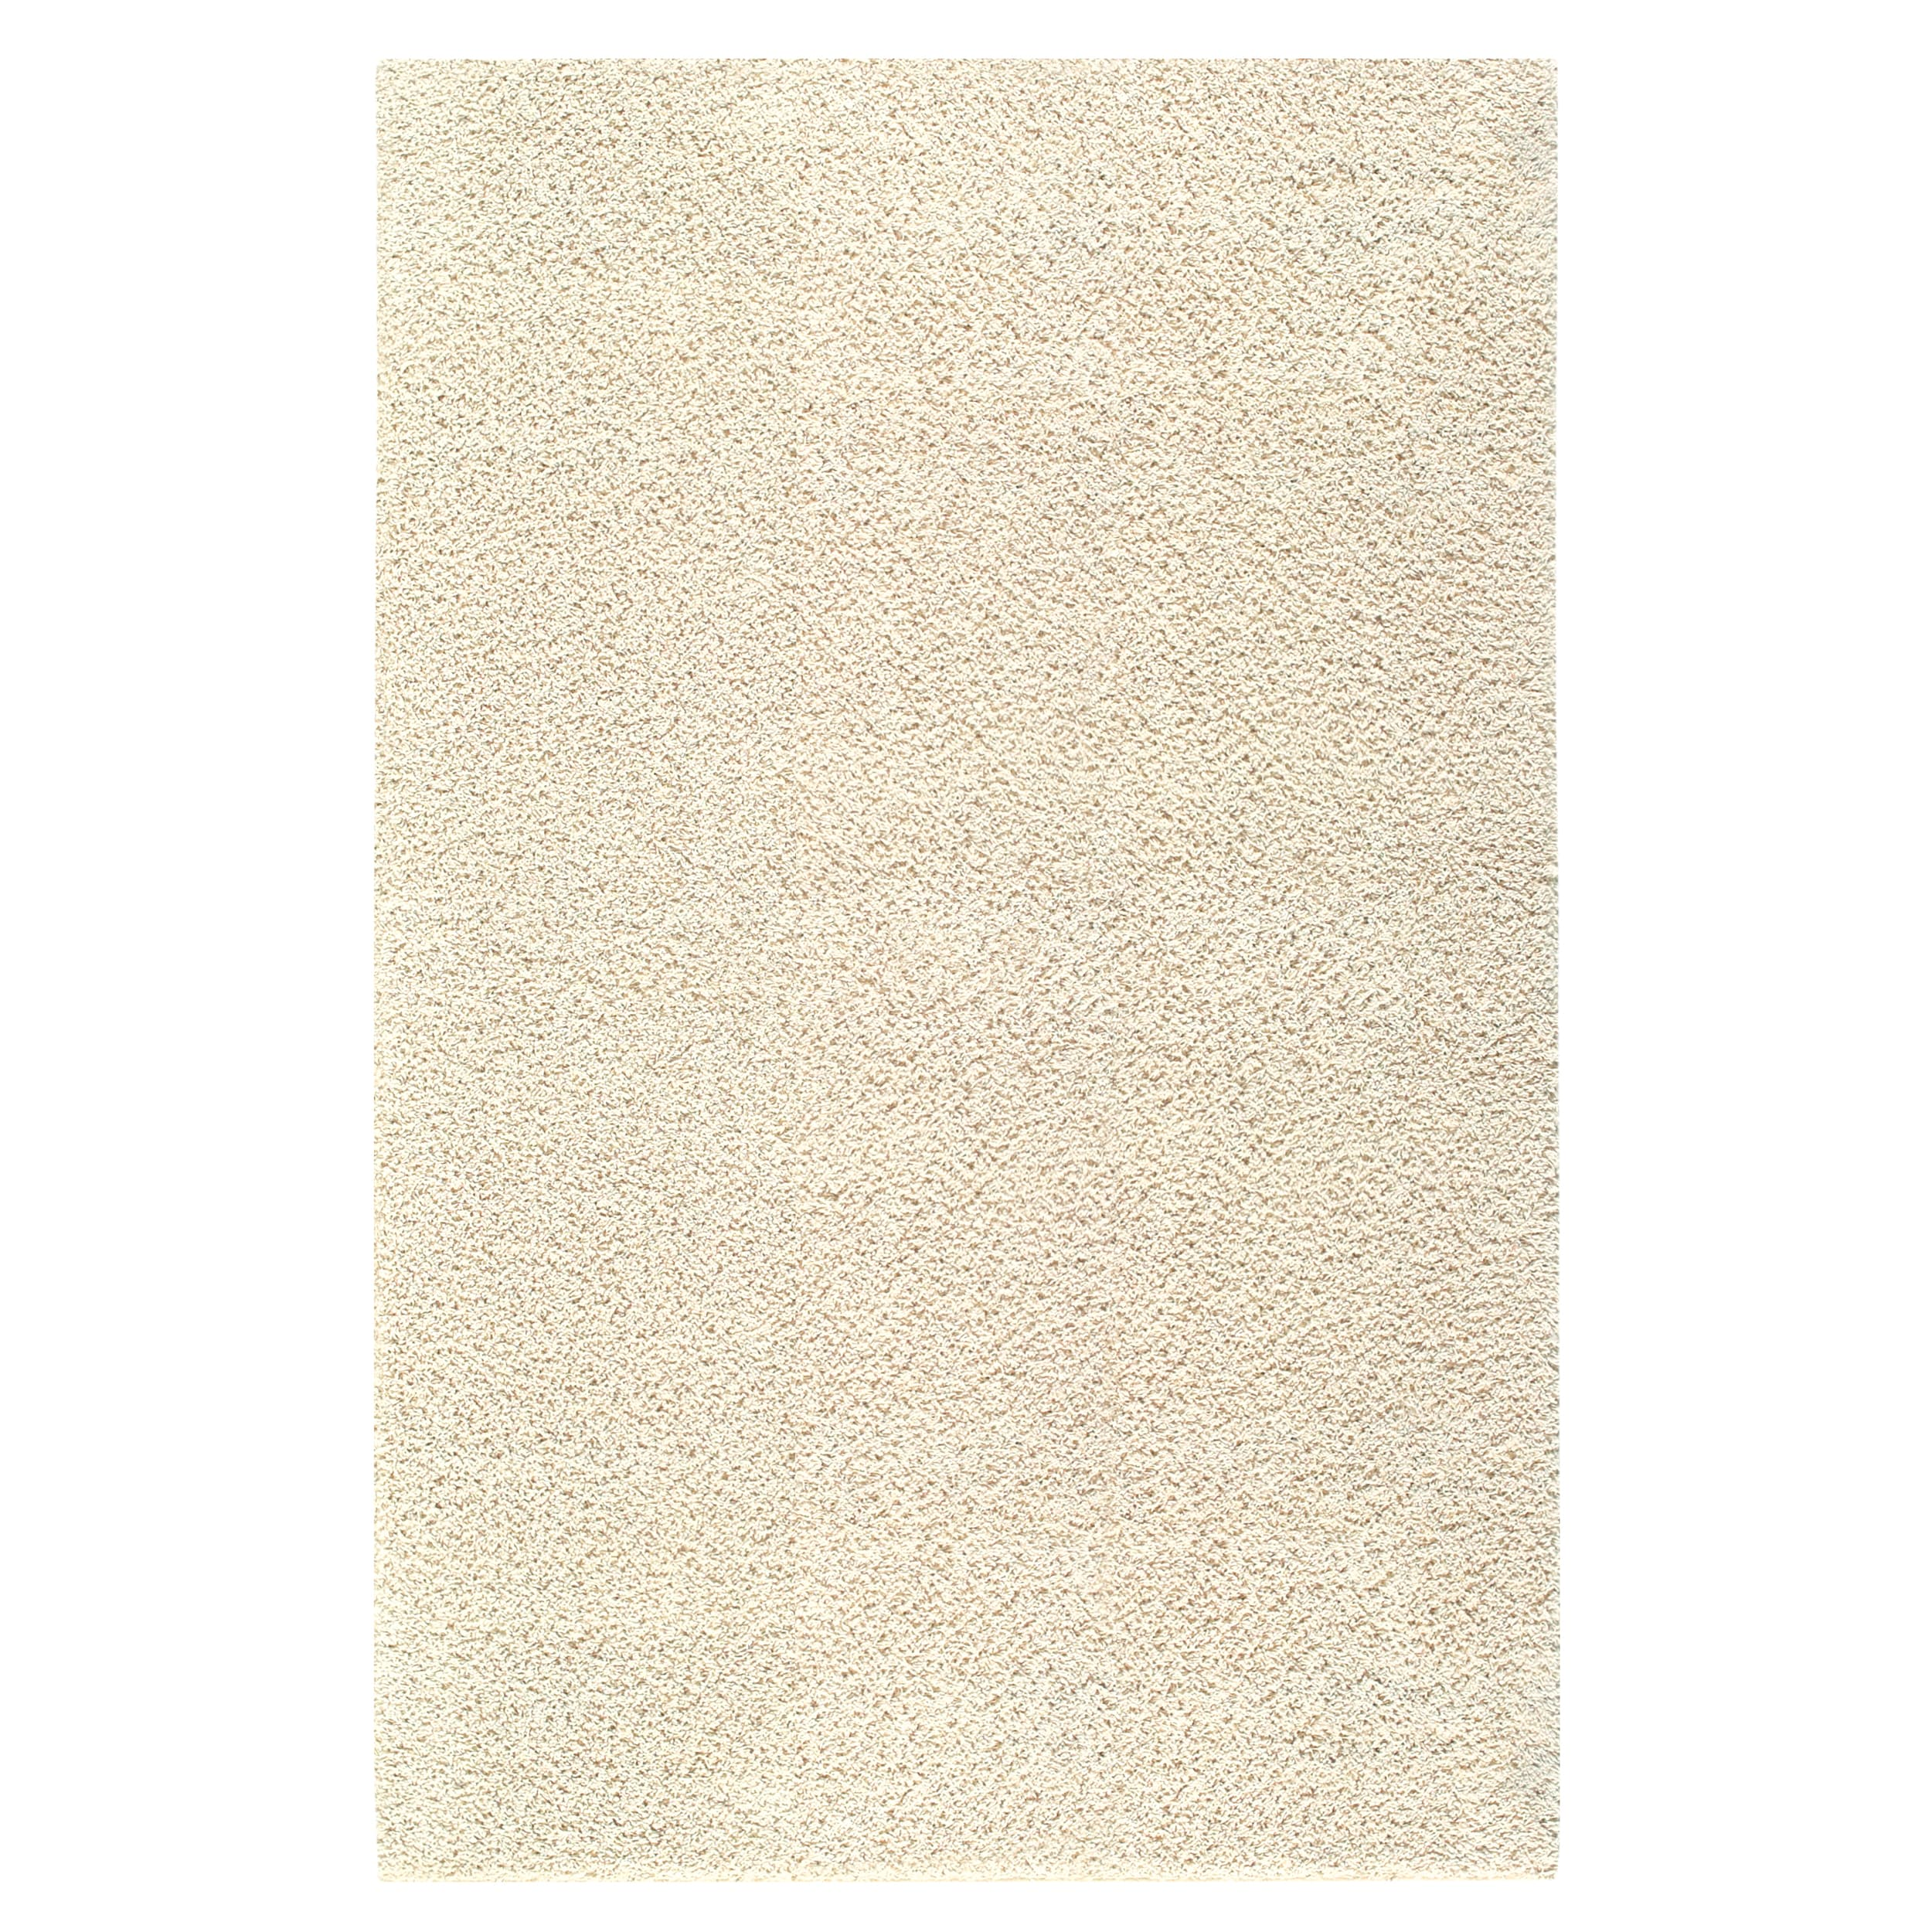 Solid Shag Starch Beige Rug (5' x 8') - 14112485 - Overstock.com Shopping - Great Deals on ...